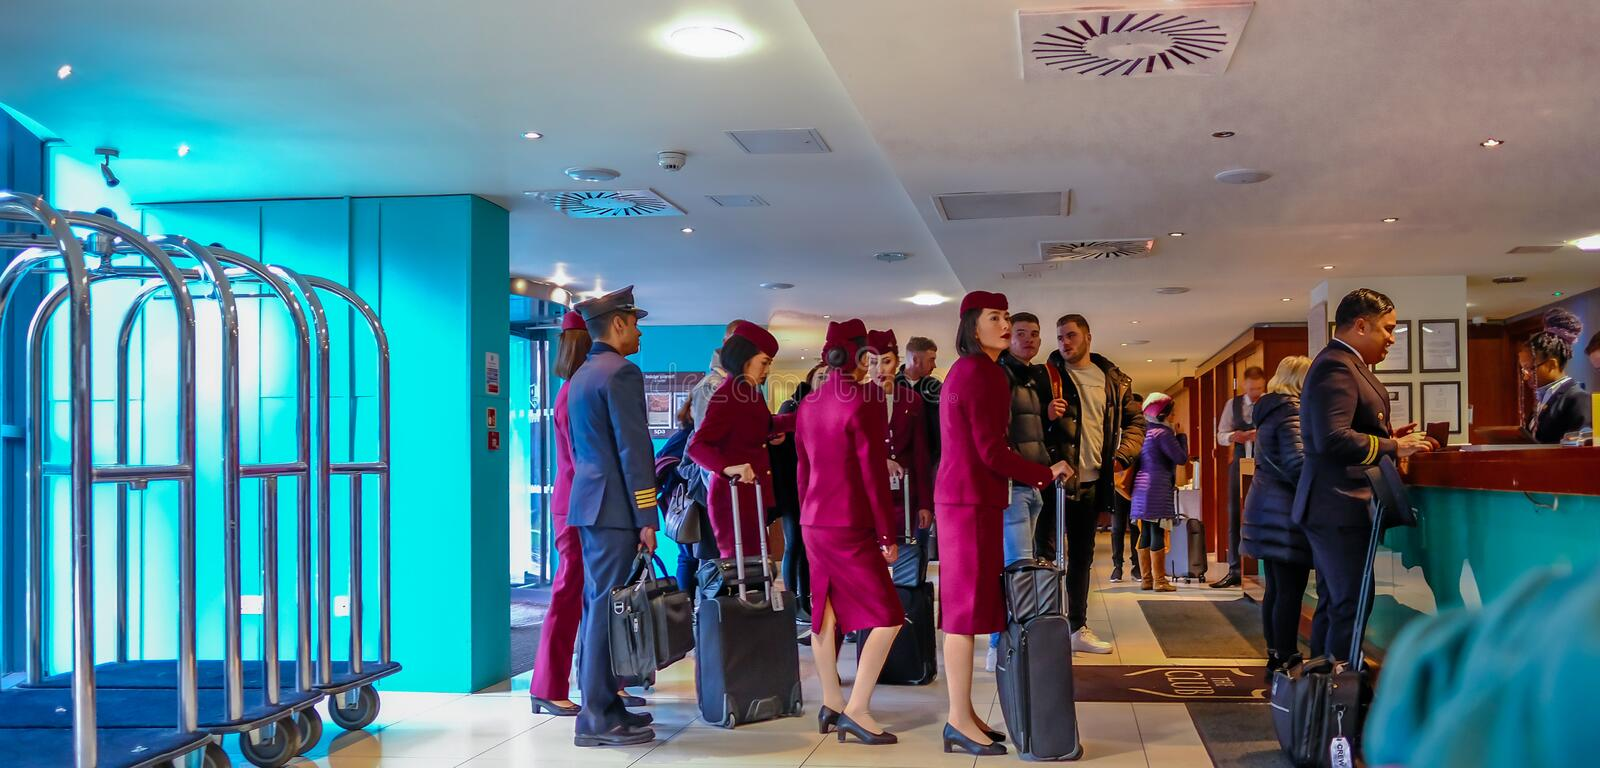 Cabin crew checking into their overnight stop off. Shows crew queing up to check in stock photo